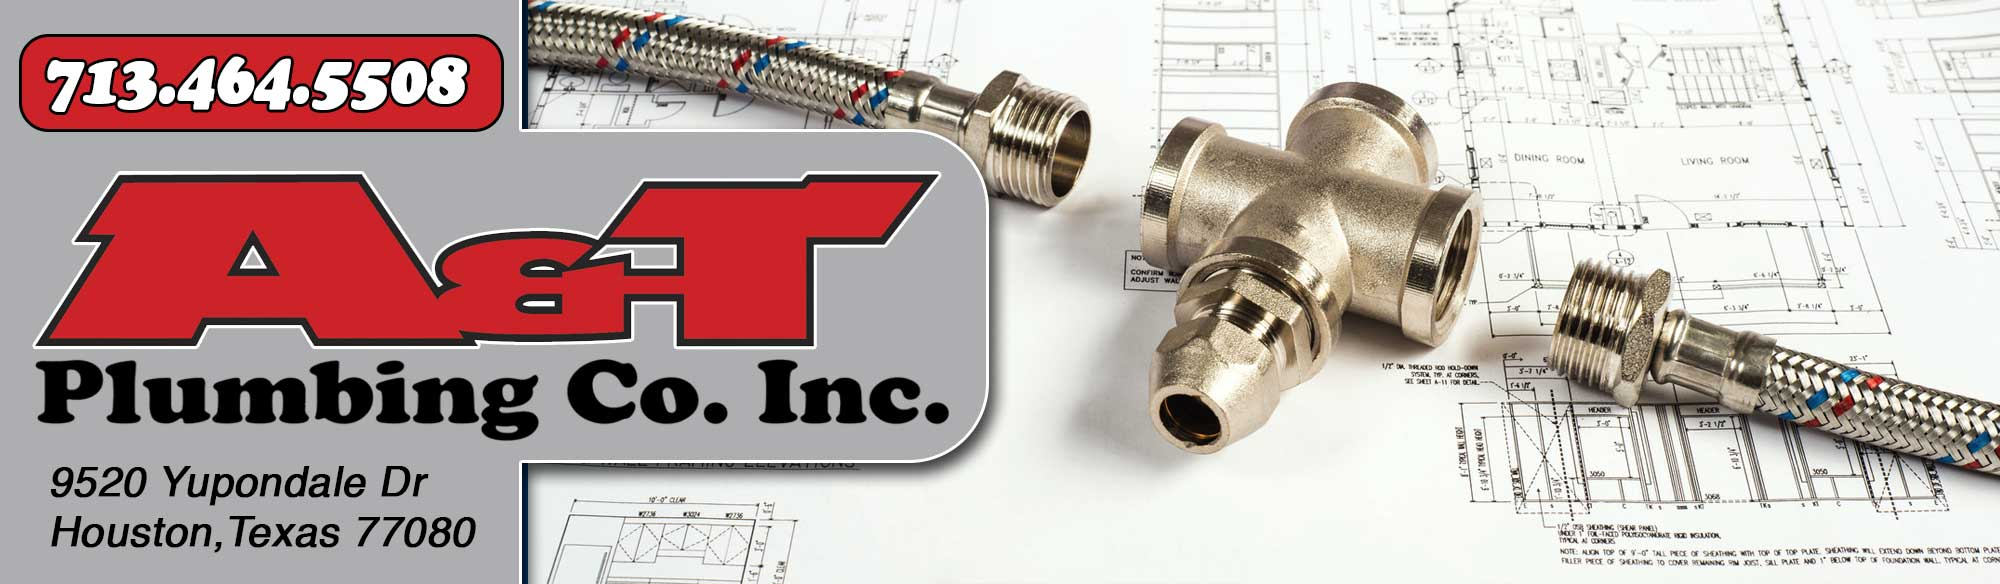 Commercial Plumbing Services in the Houston Area